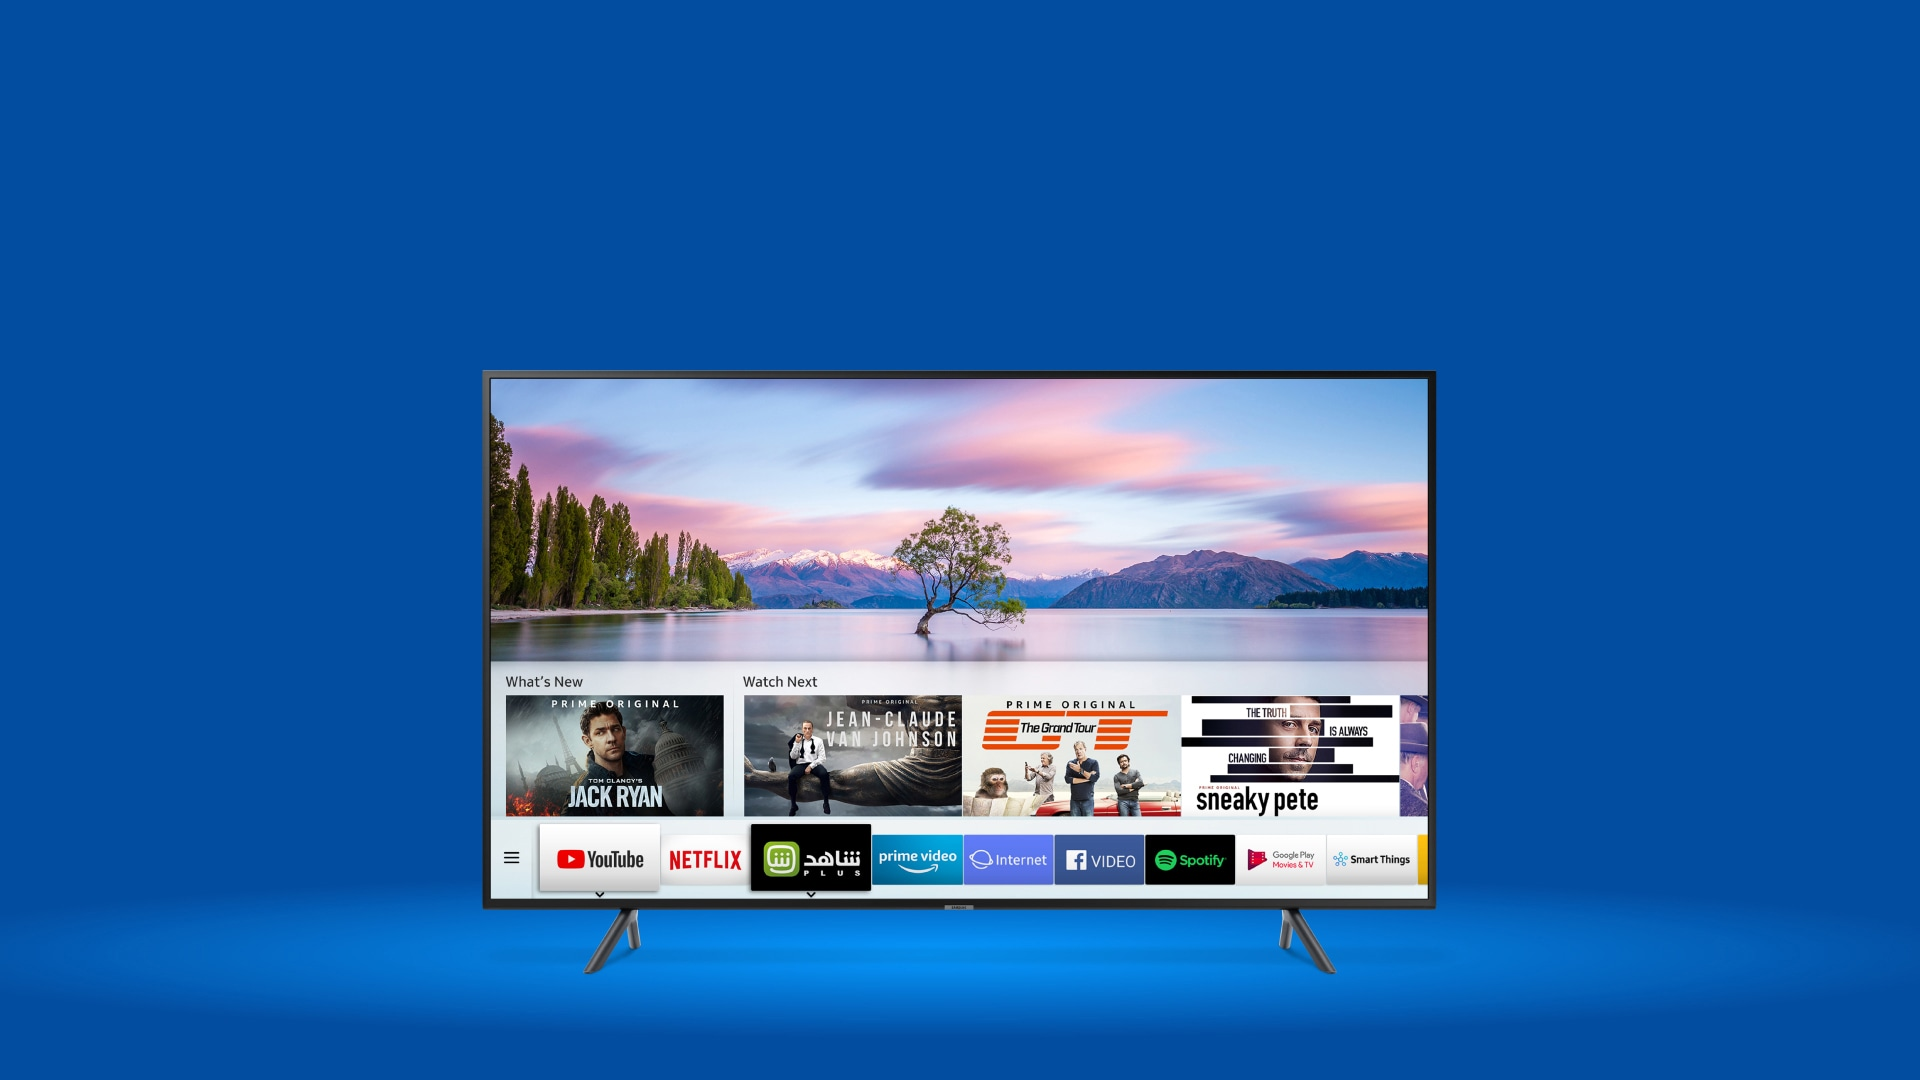 Samsung TV on blue background.